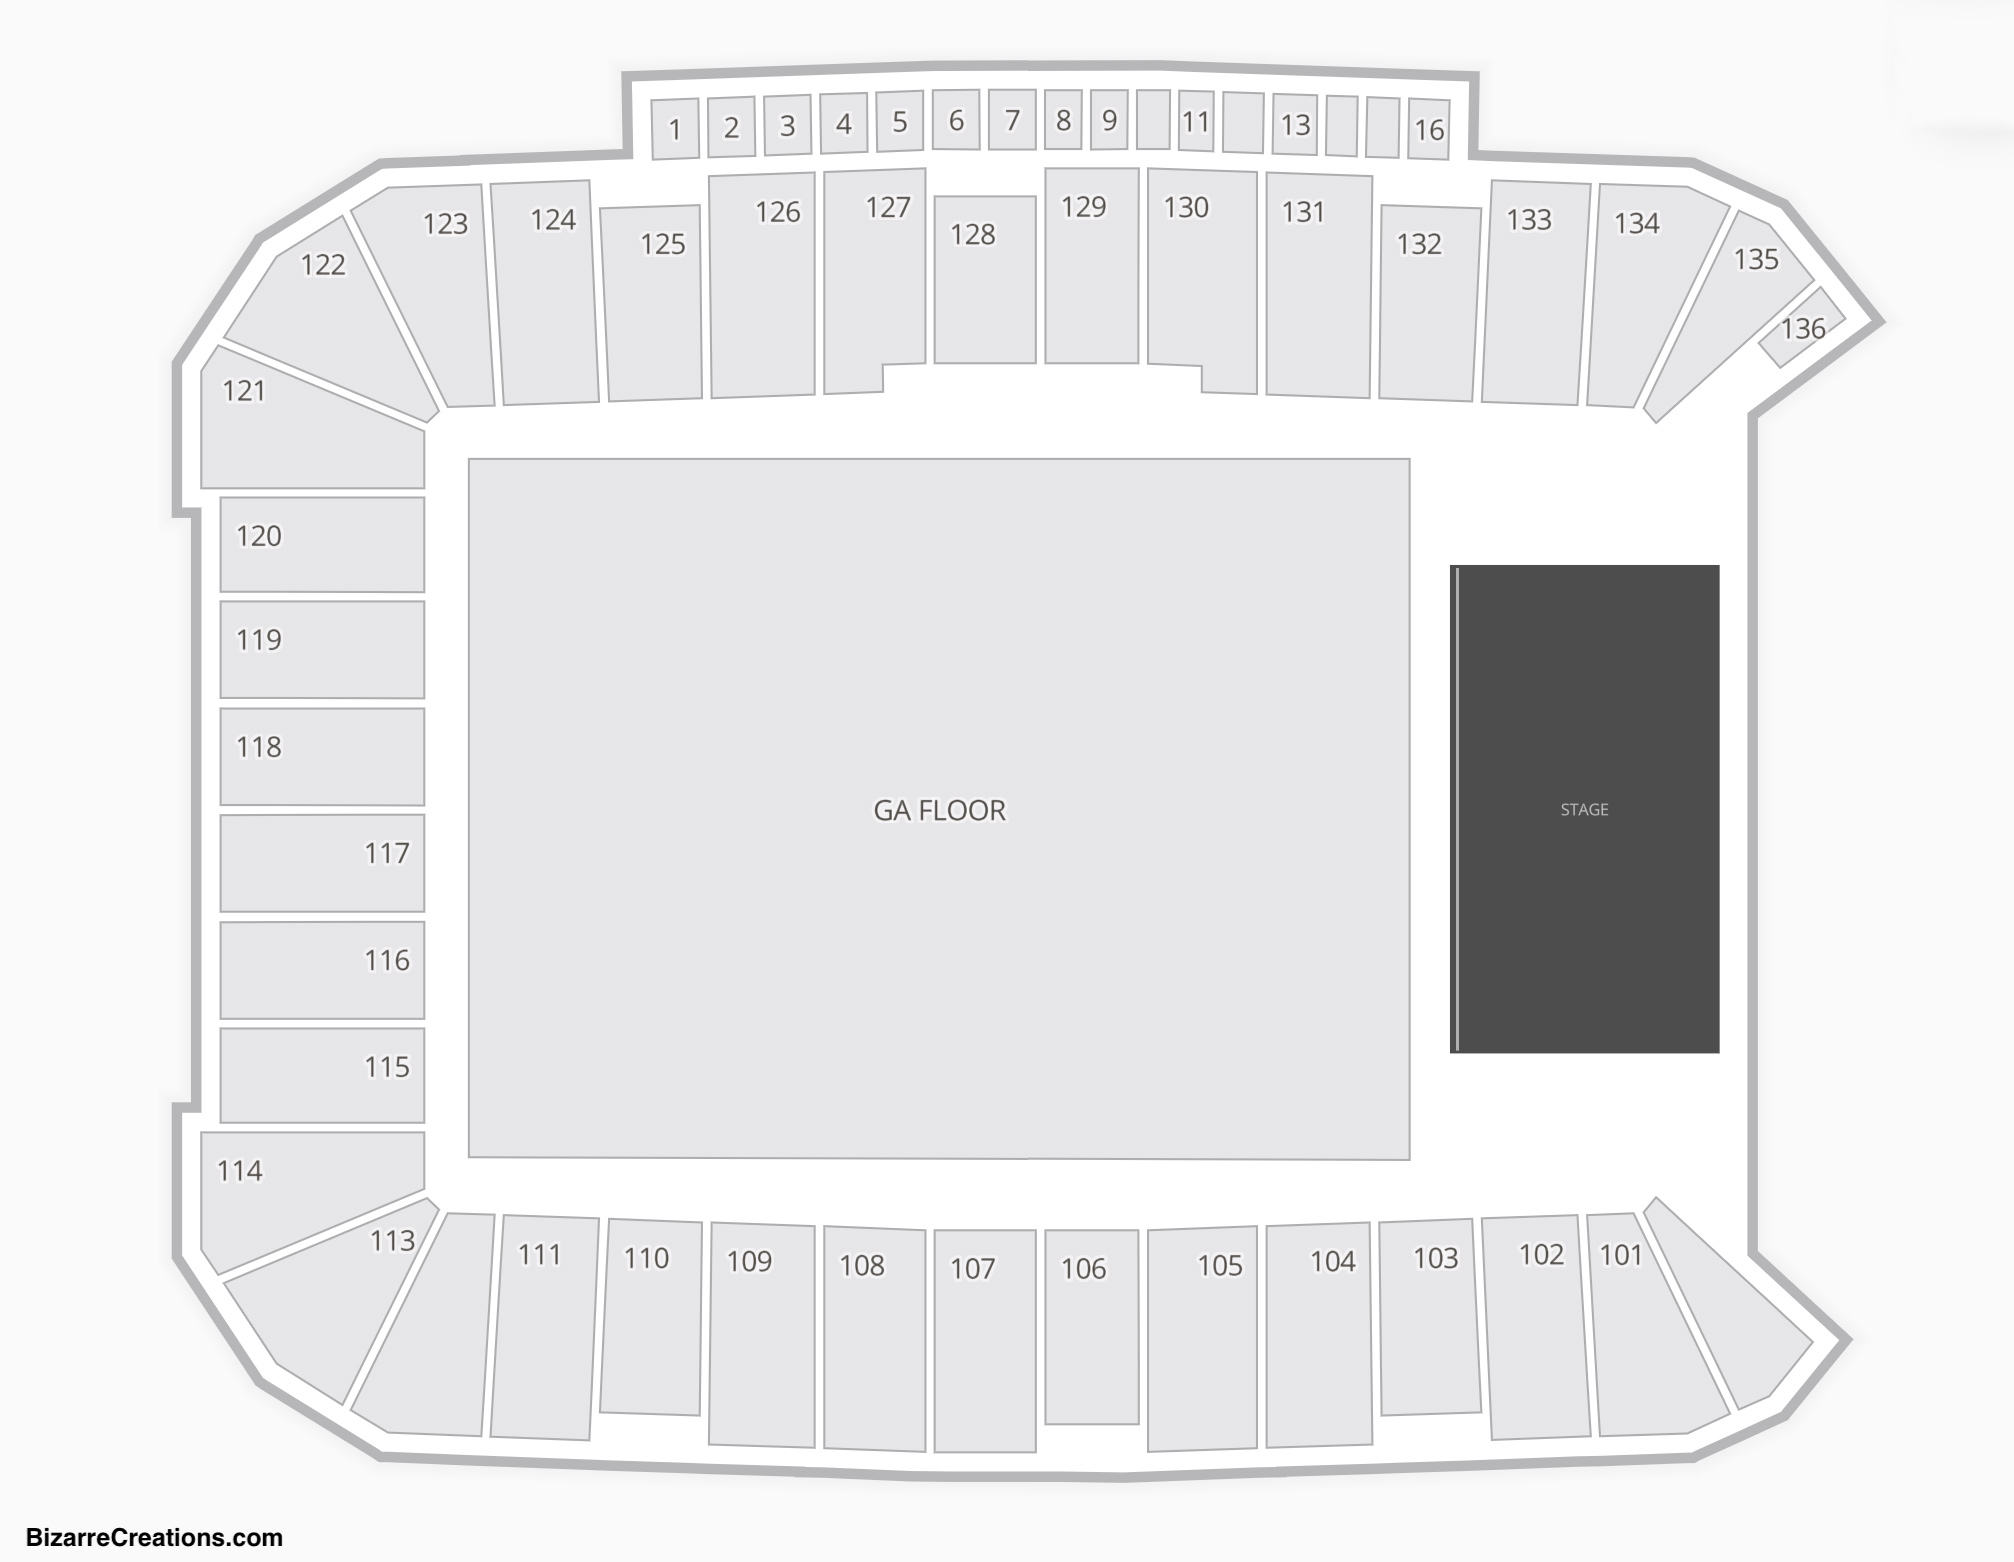 DSG Park Seating Chart Concert